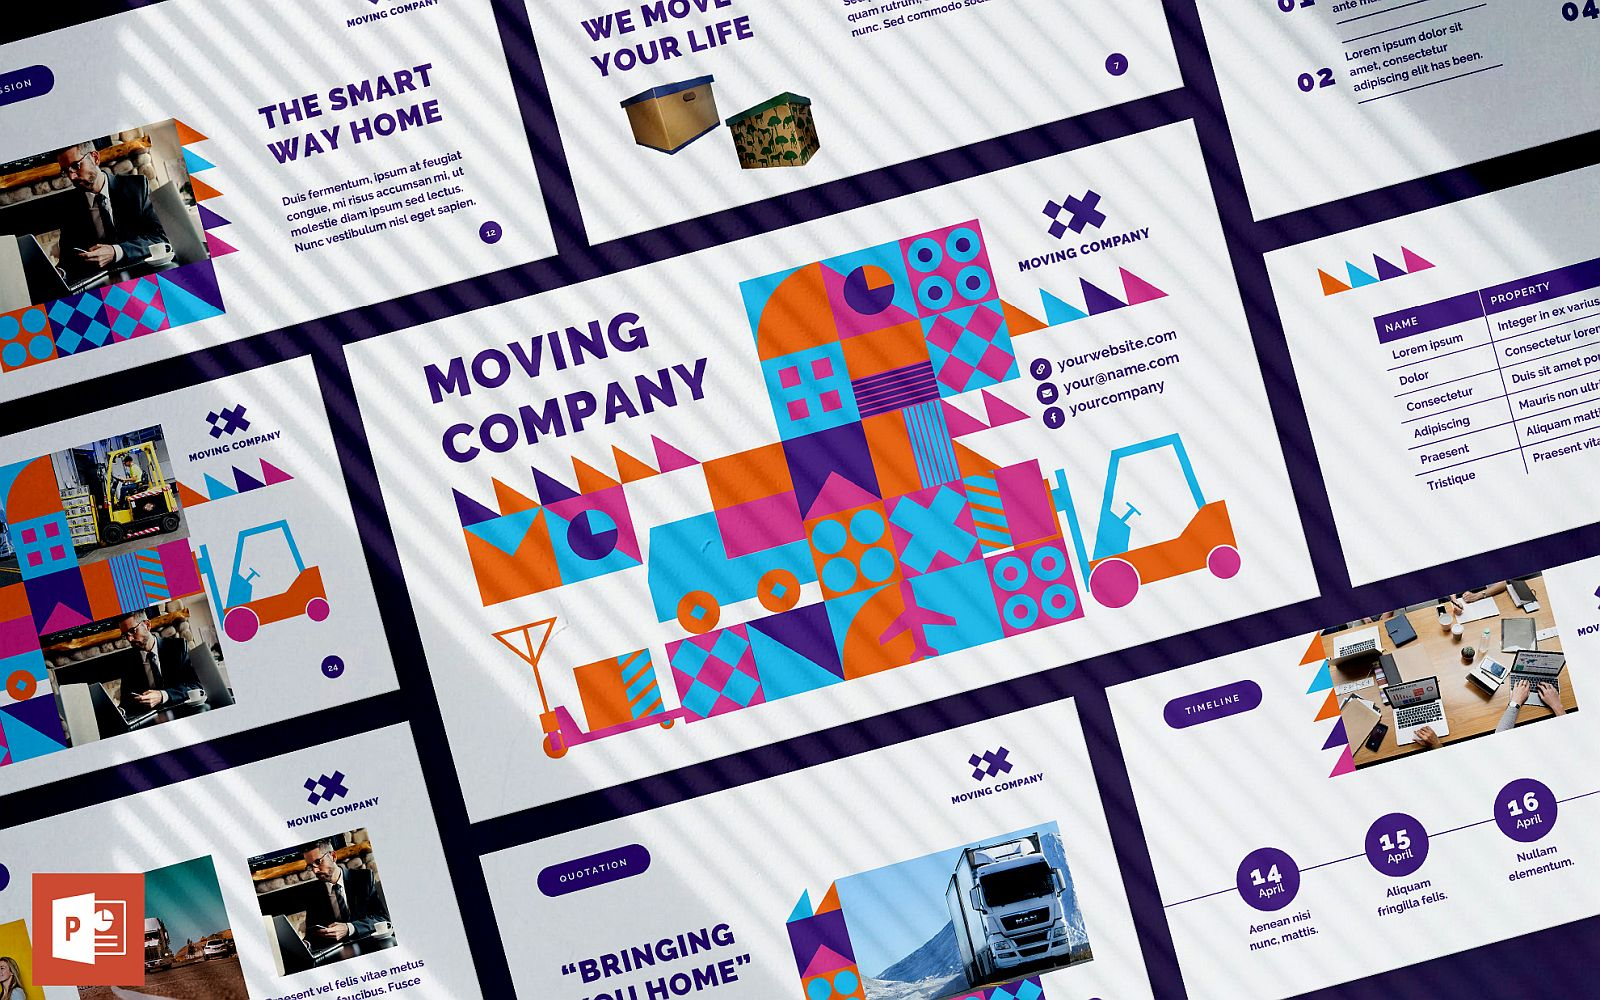 Moving Company Presentation PowerPoint Template